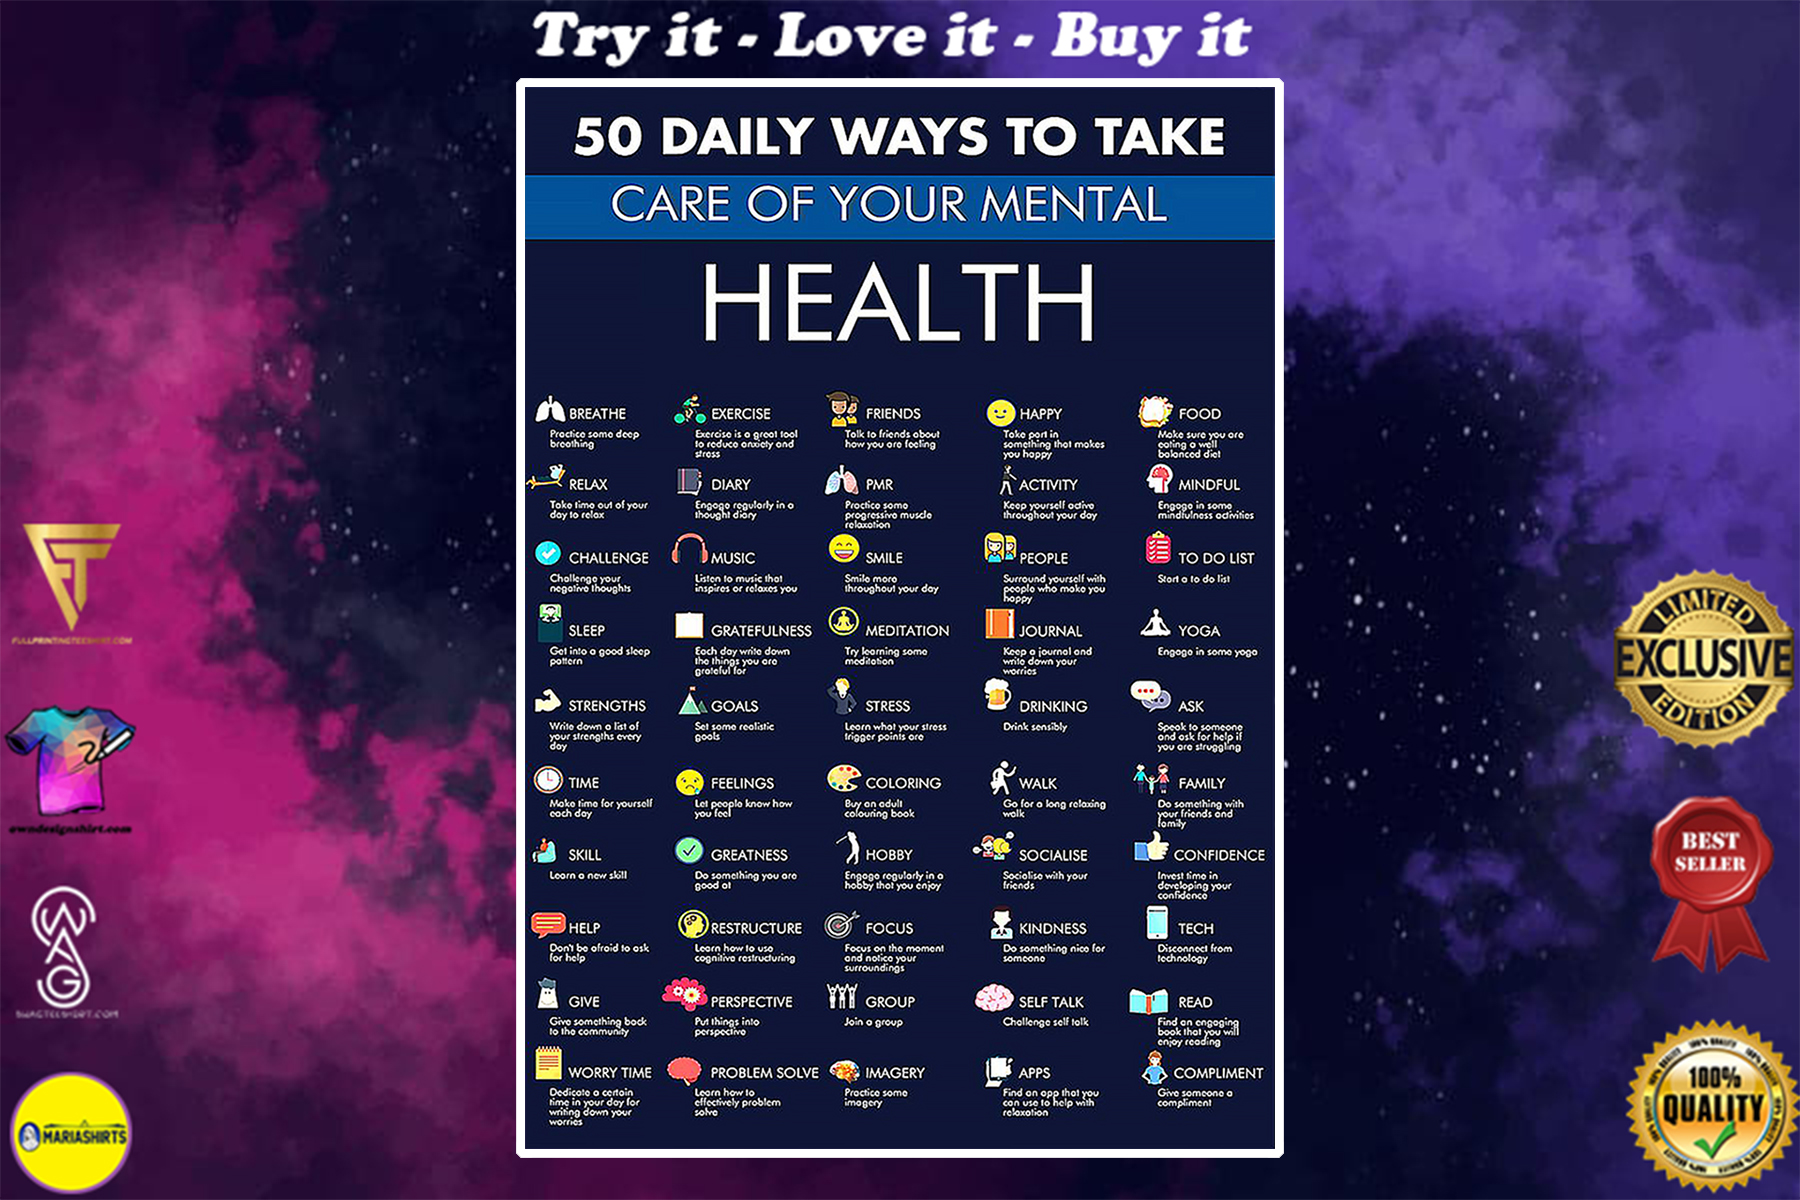 50 daily ways to take care your mental health poster